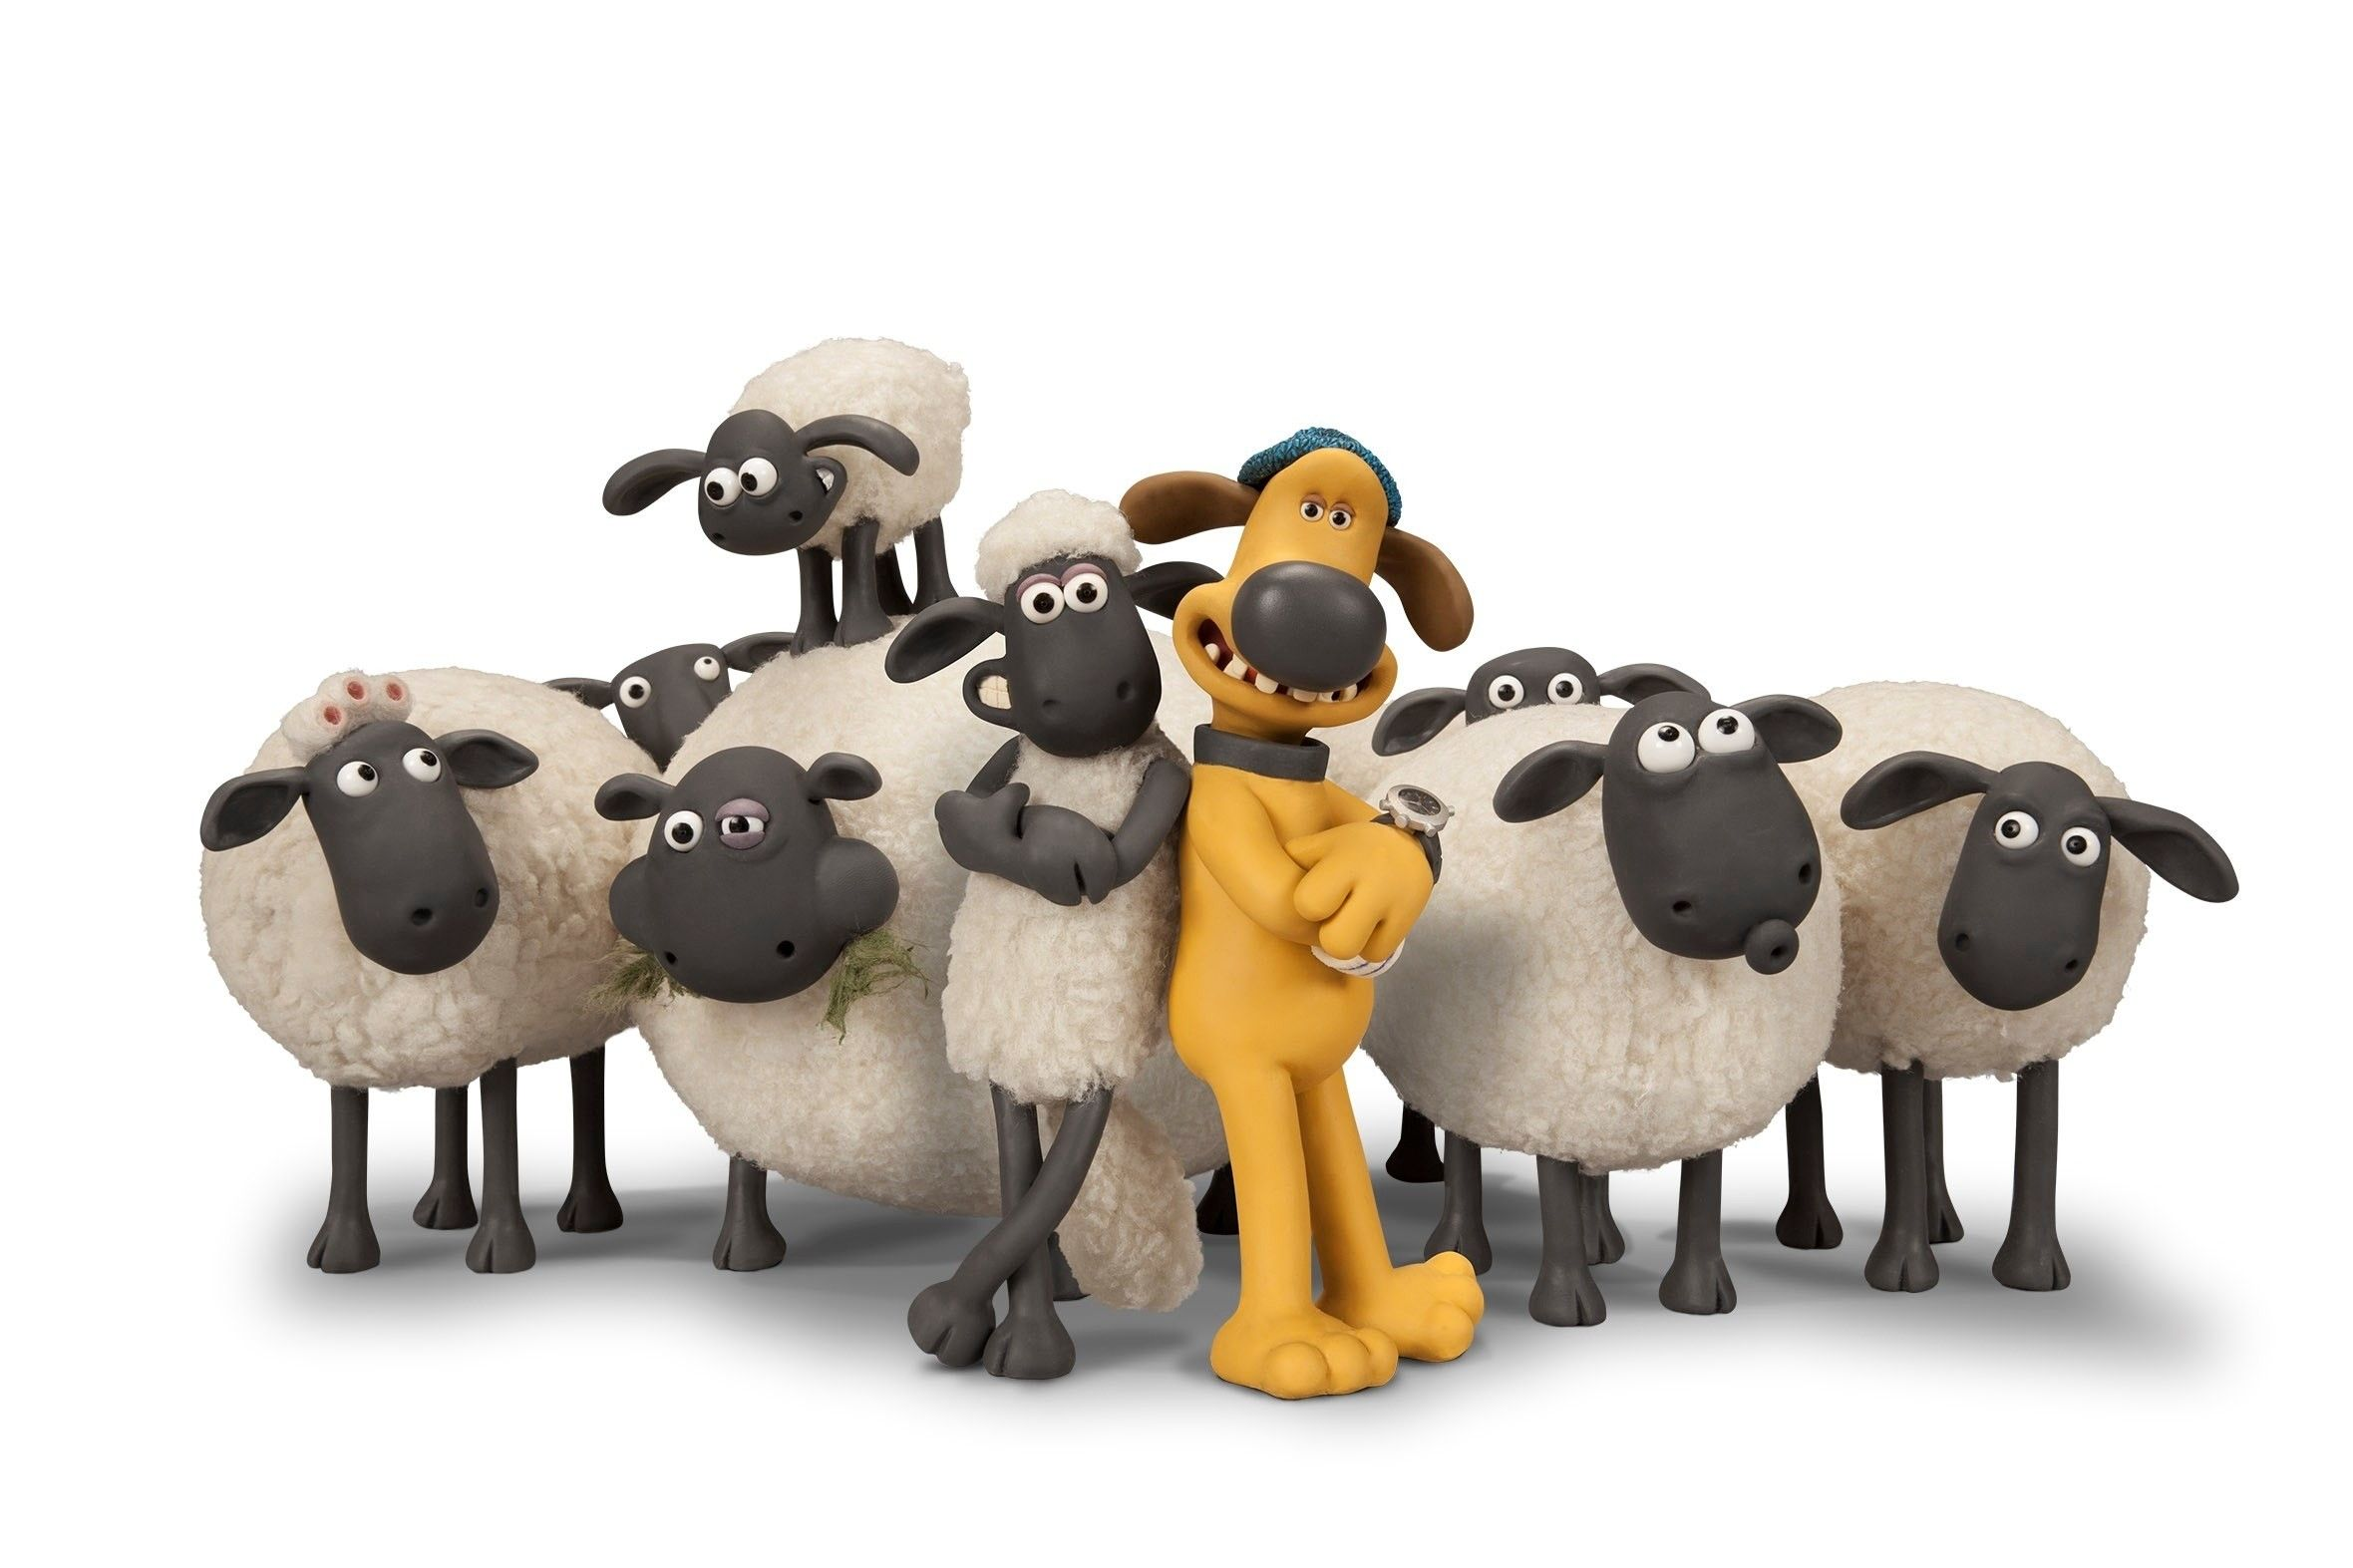 Shaun The Sheep Wallpaper 2360x1573 Ipad 2020 ひつじの